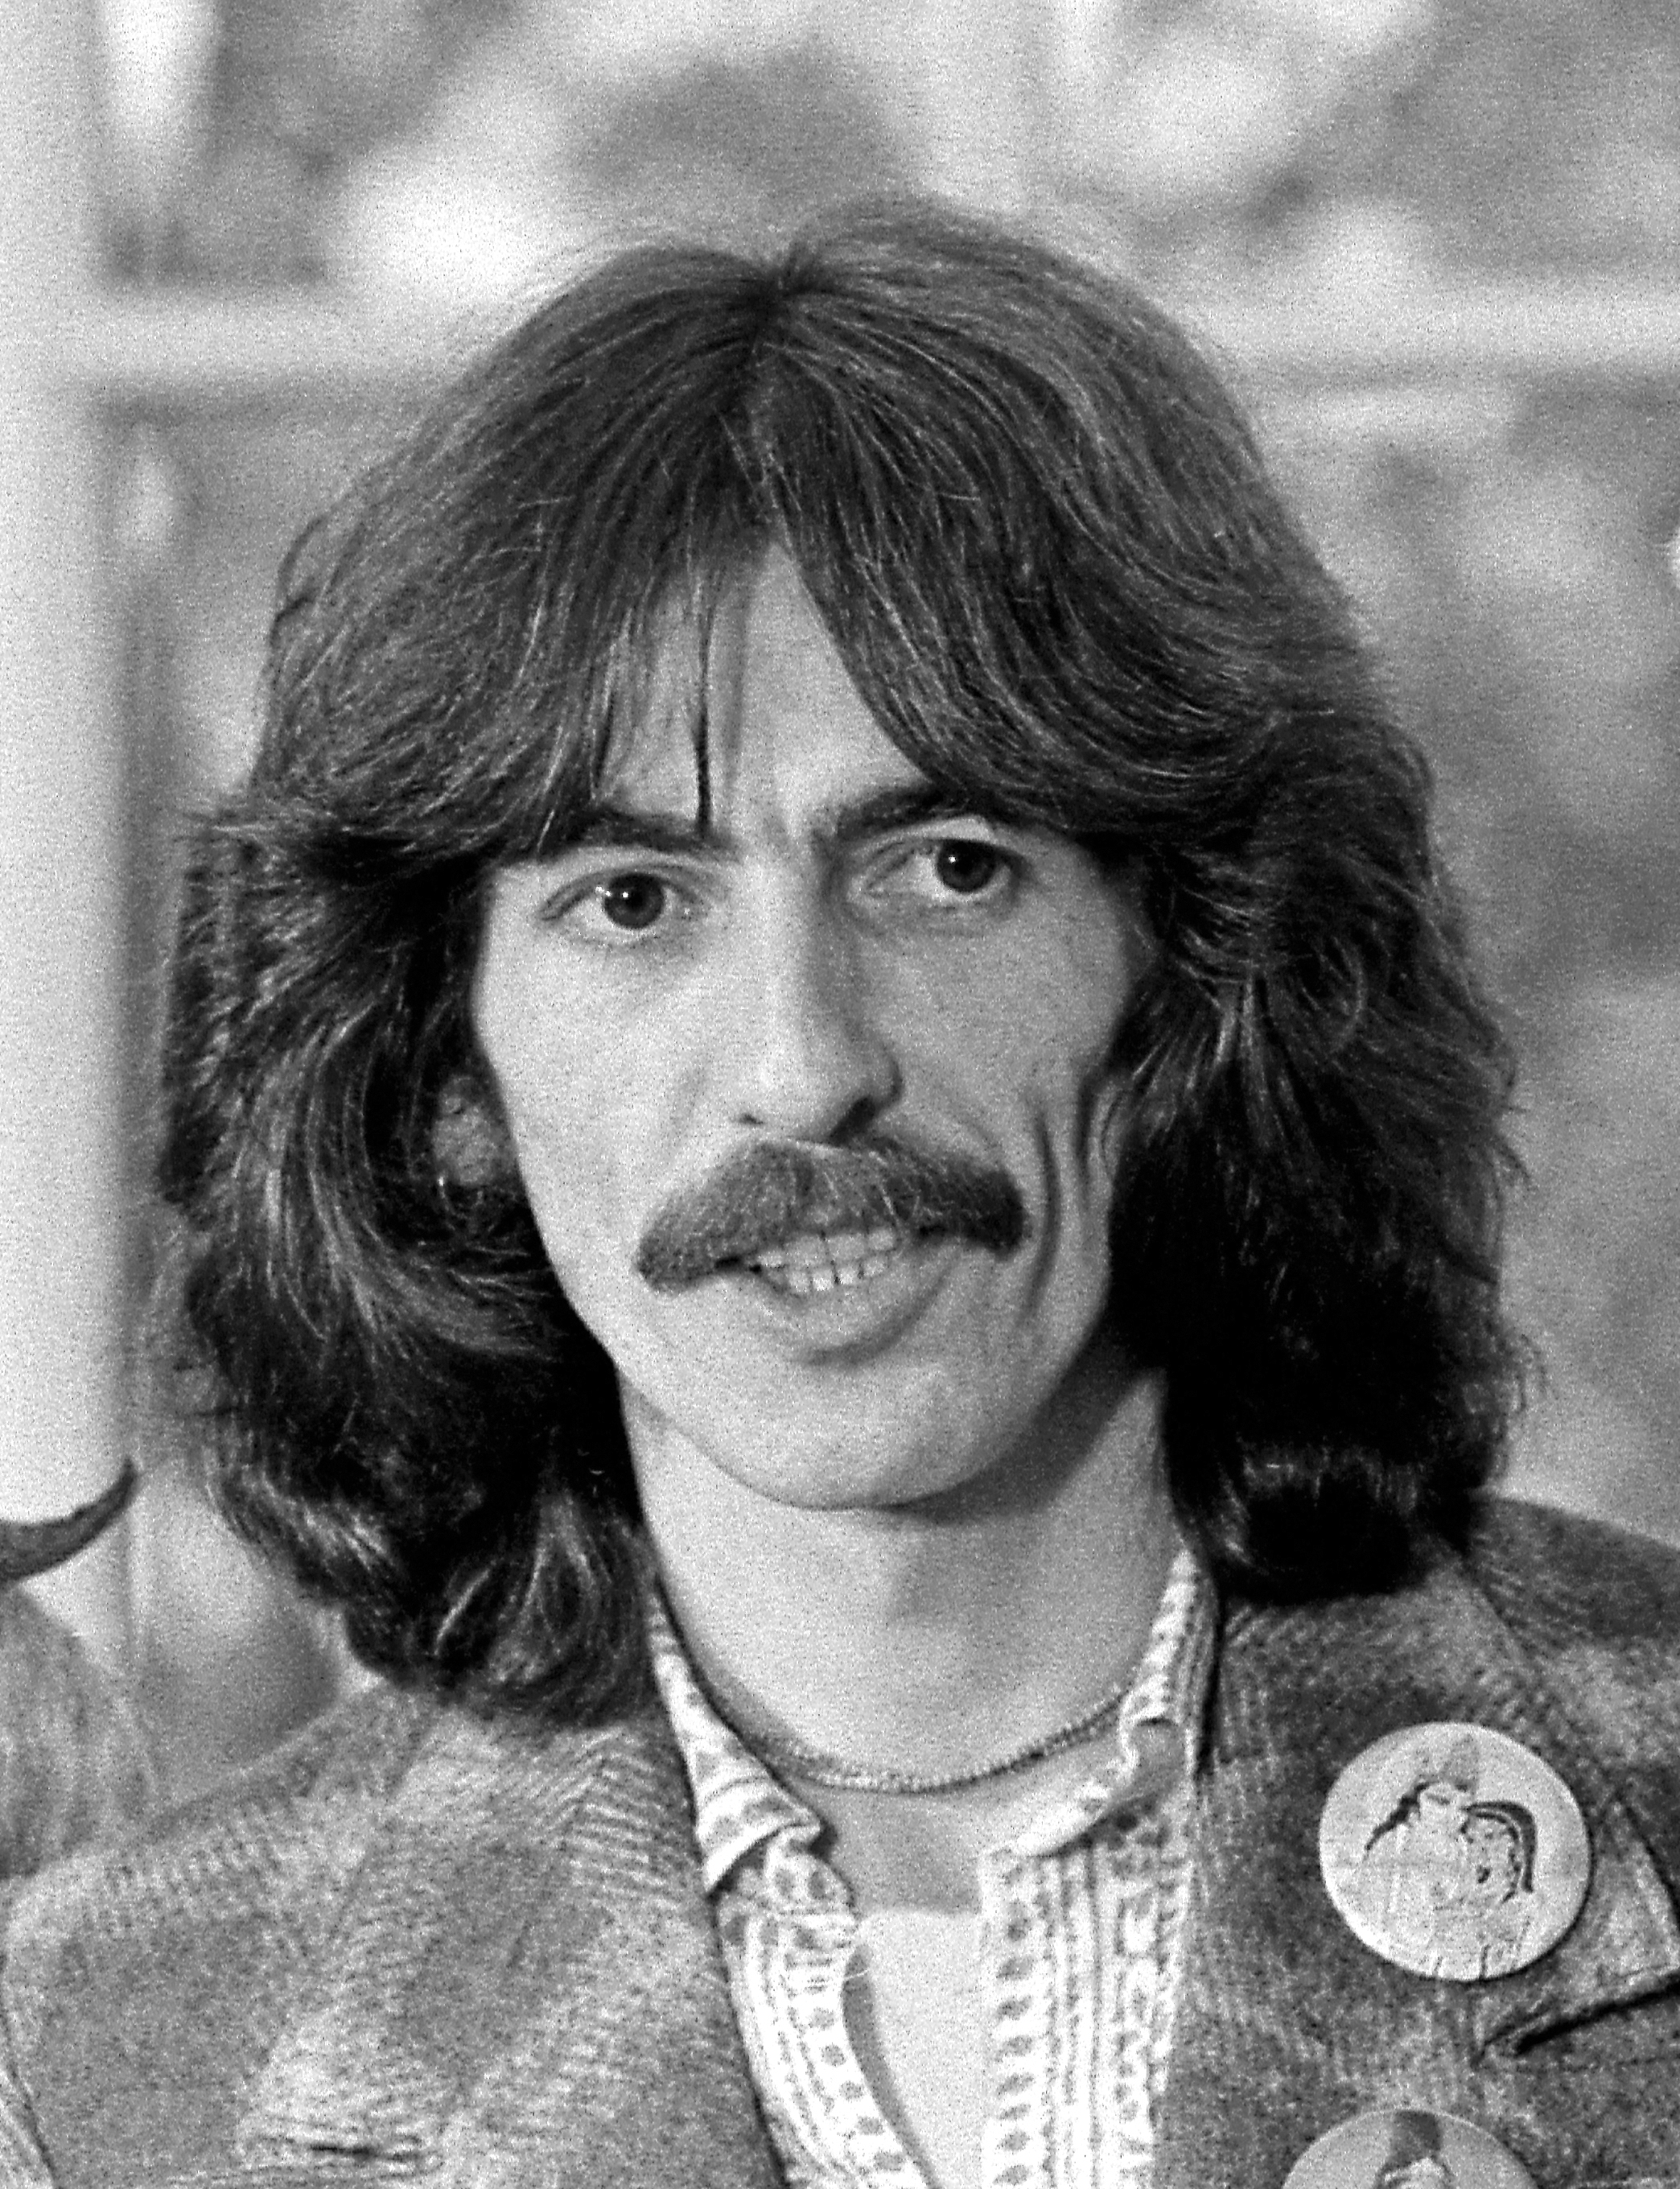 George_Harrison_1974_edited.jpg